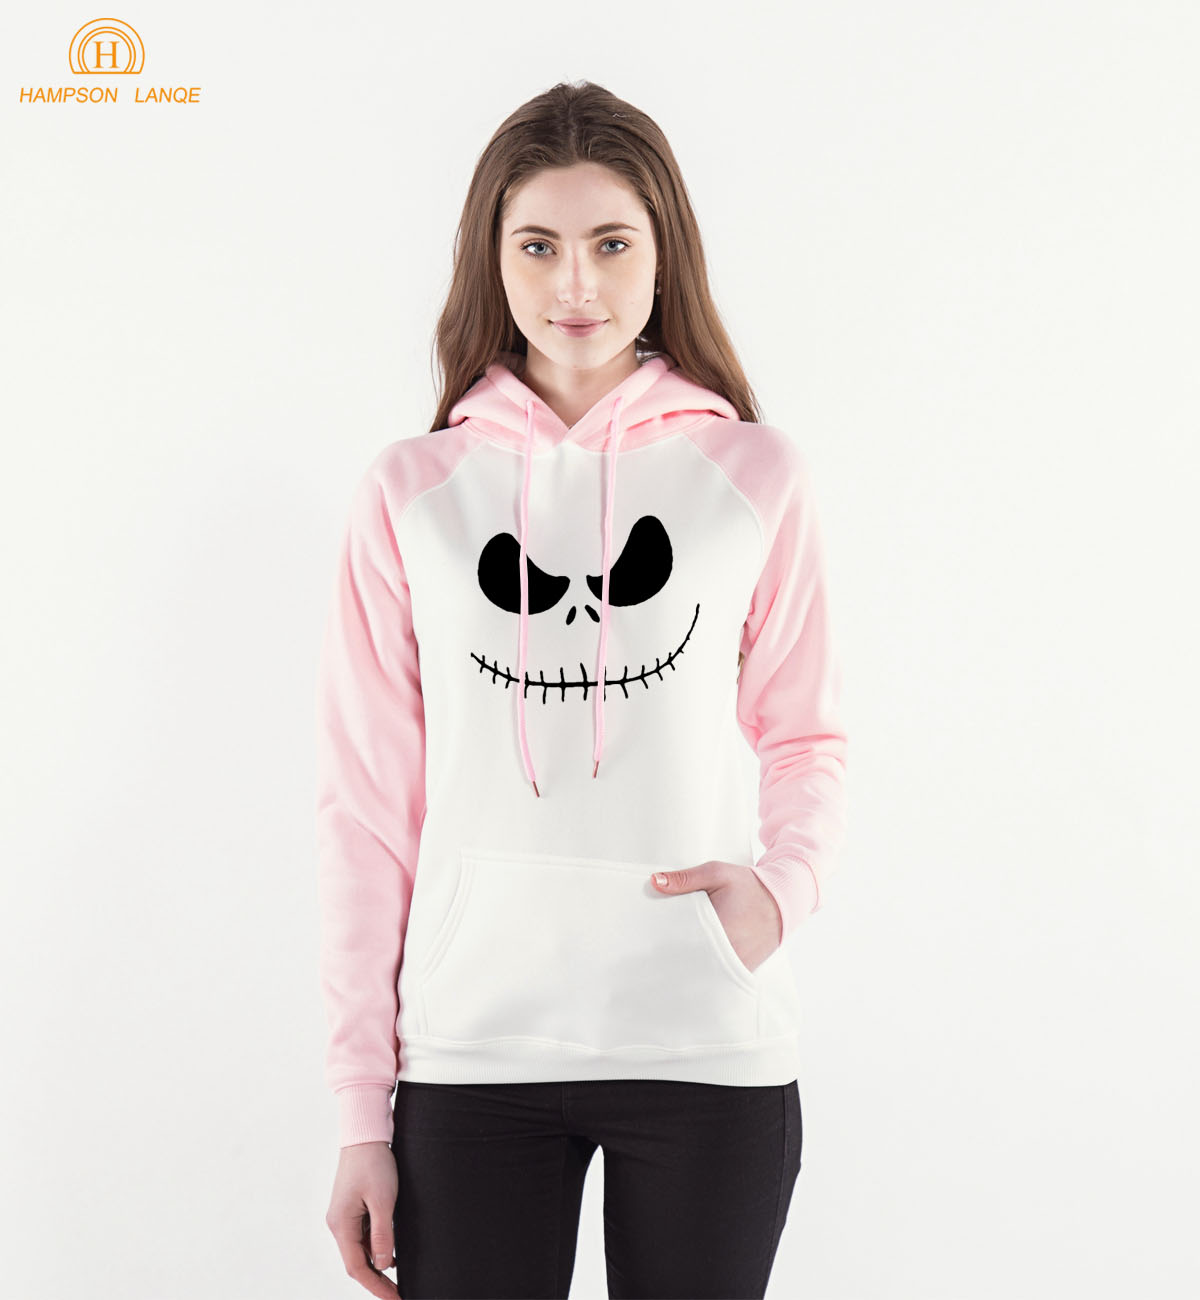 2018 Spring Autumn Raglan Hoodies Halloween Town Pumpkin King Jack Skellington Pink Casual Hoodies Womens Sweatshirts Tracksuit